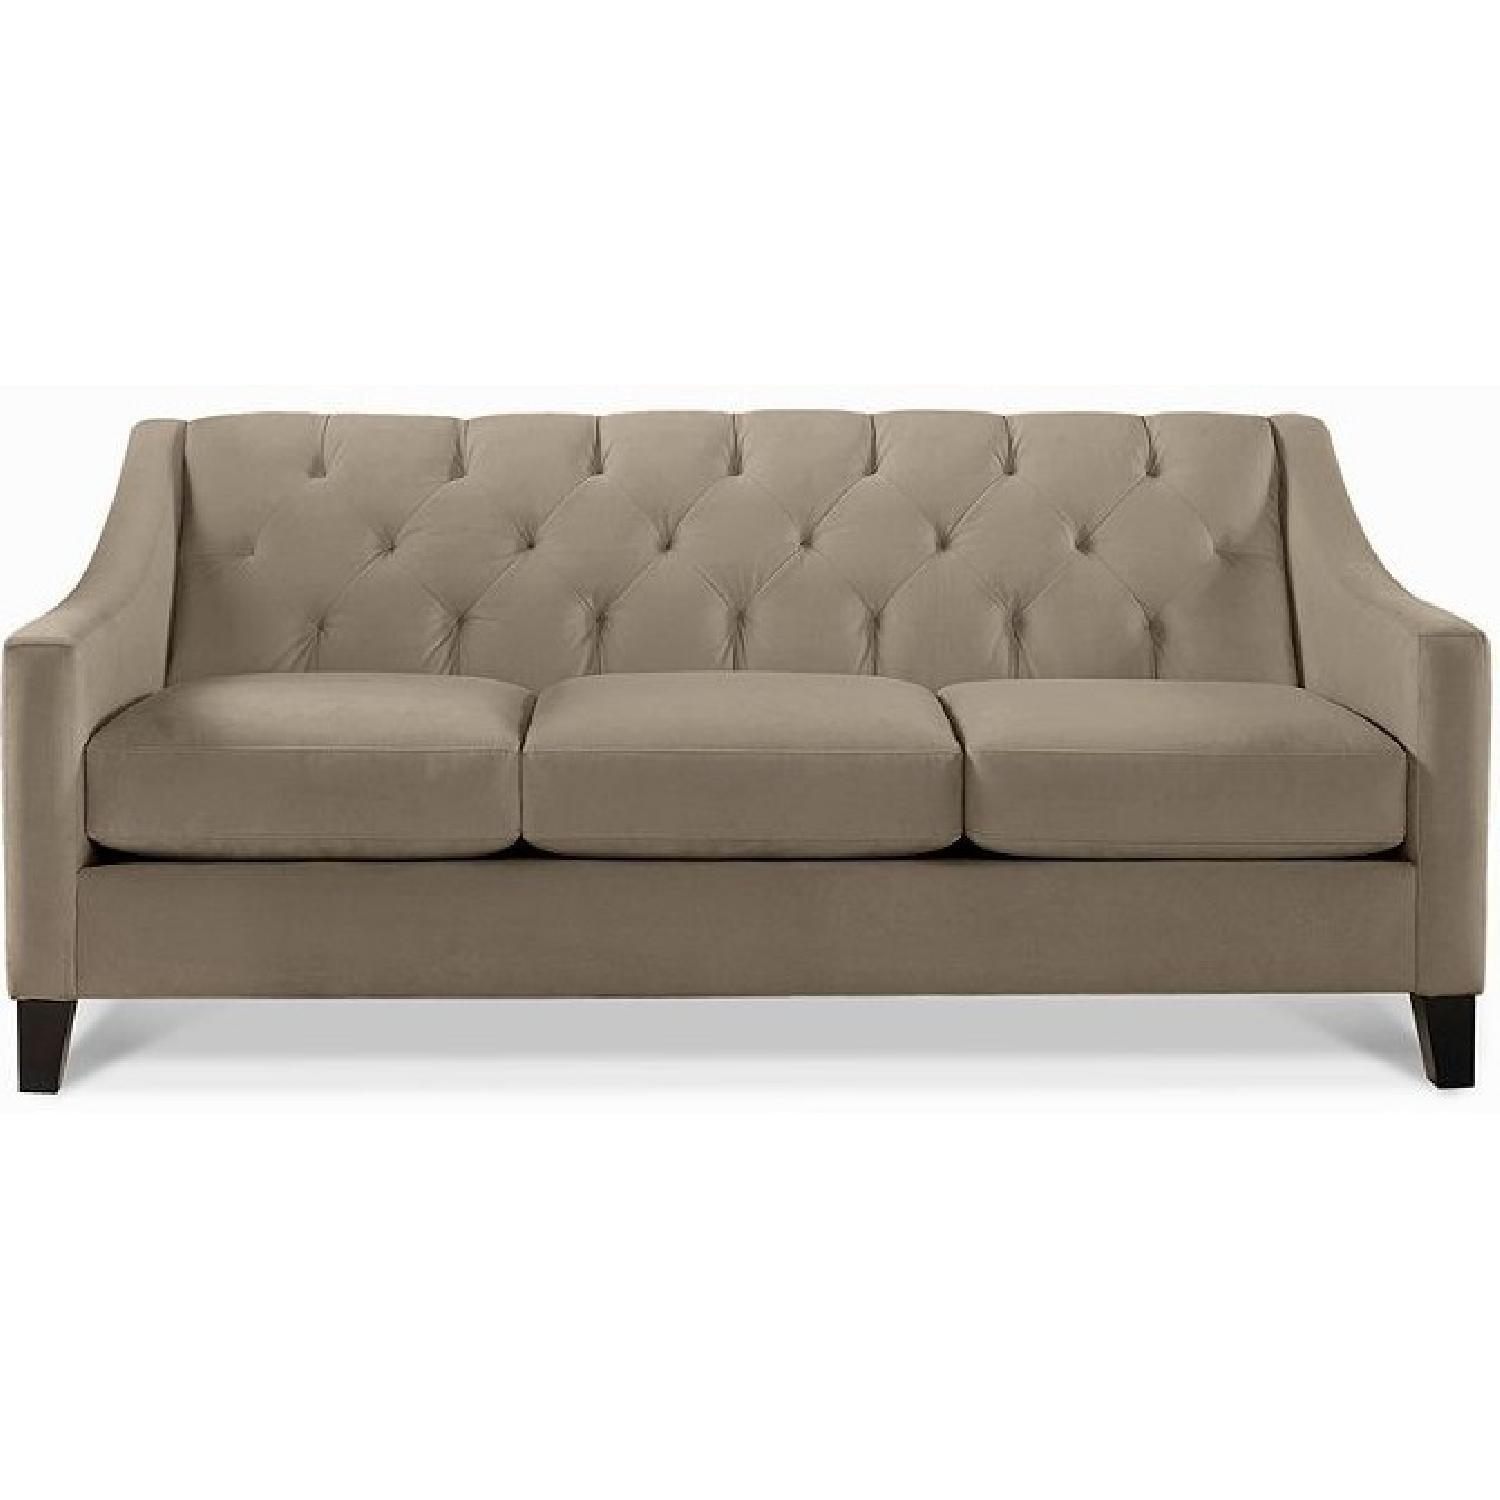 Macy's Chloe Grey Tufted Sofa